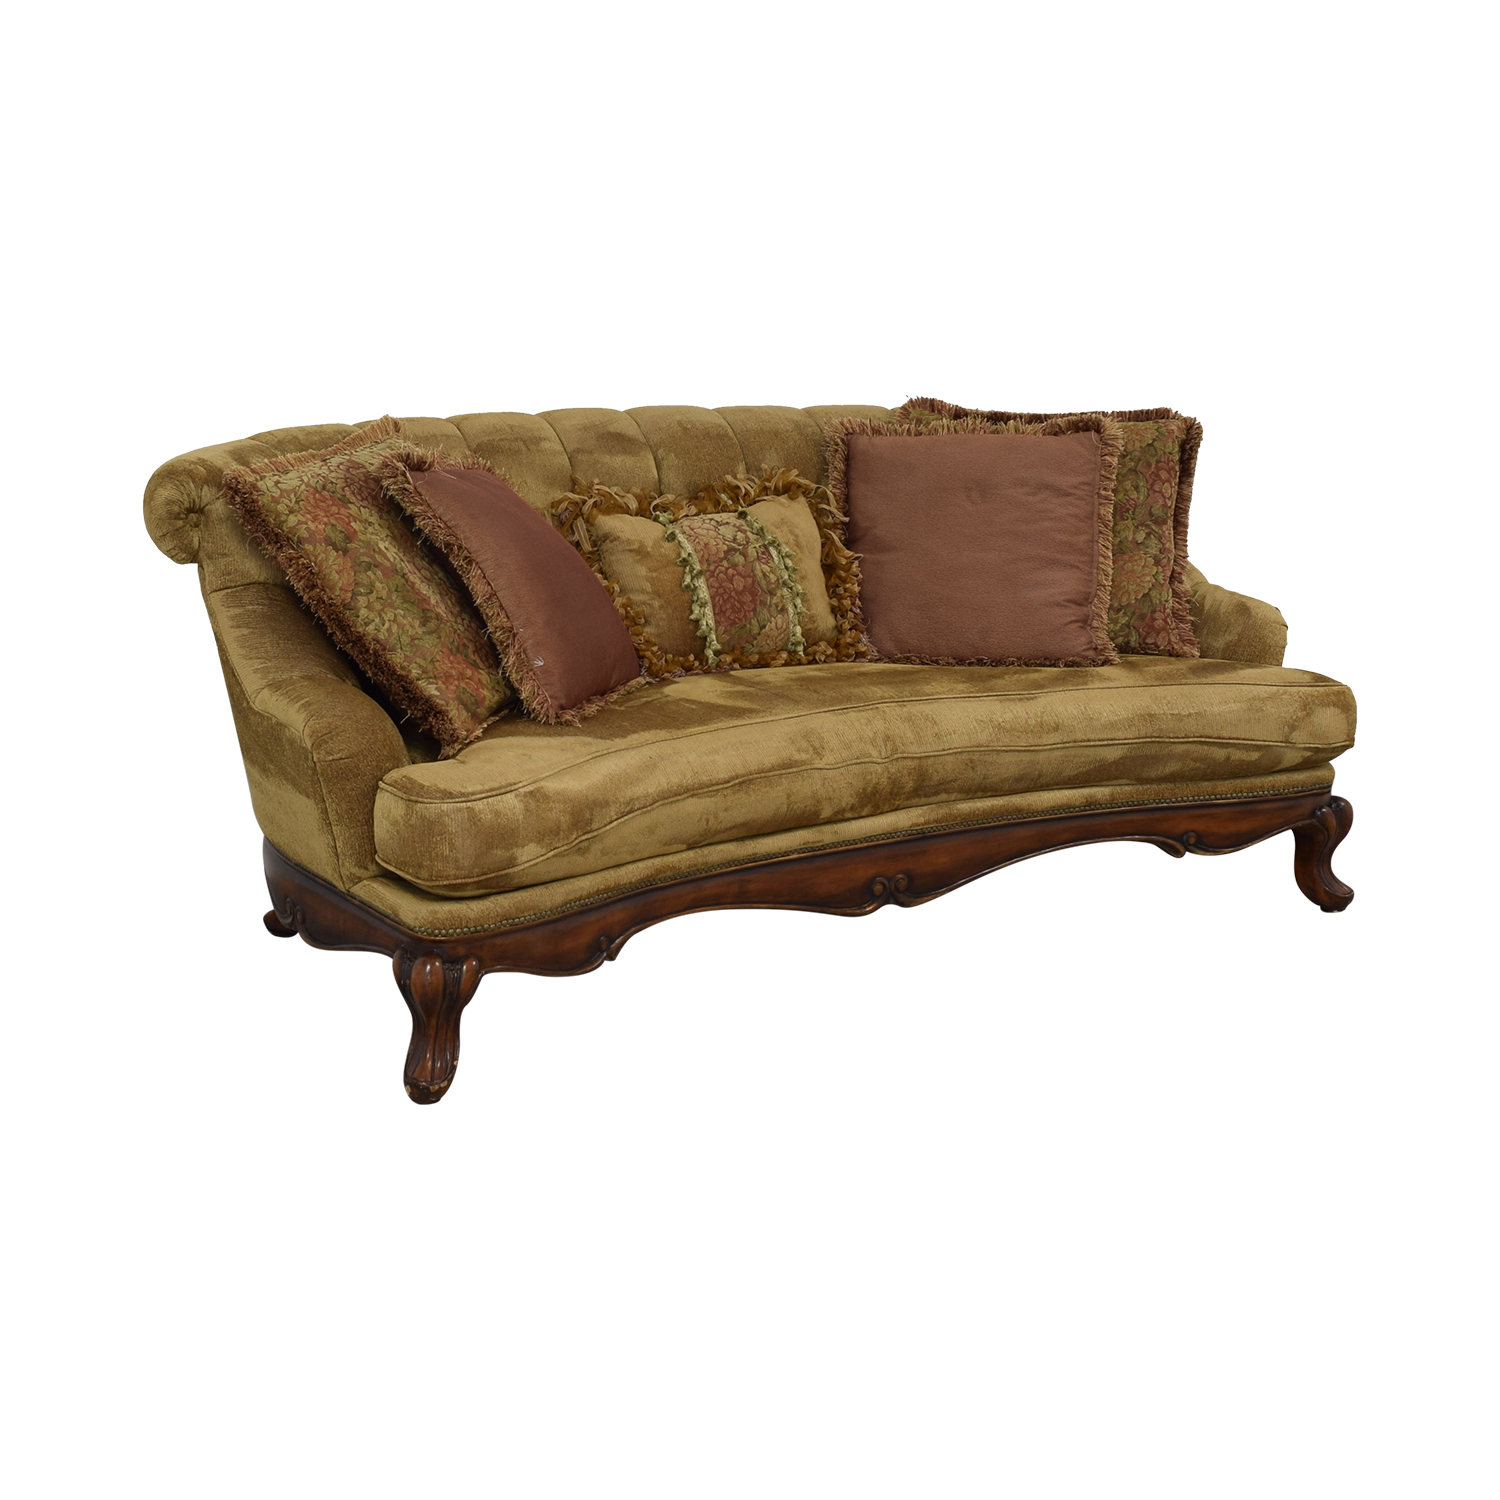 Schnadig Composition Collection Sitting Room Sofa / Classic Sofas